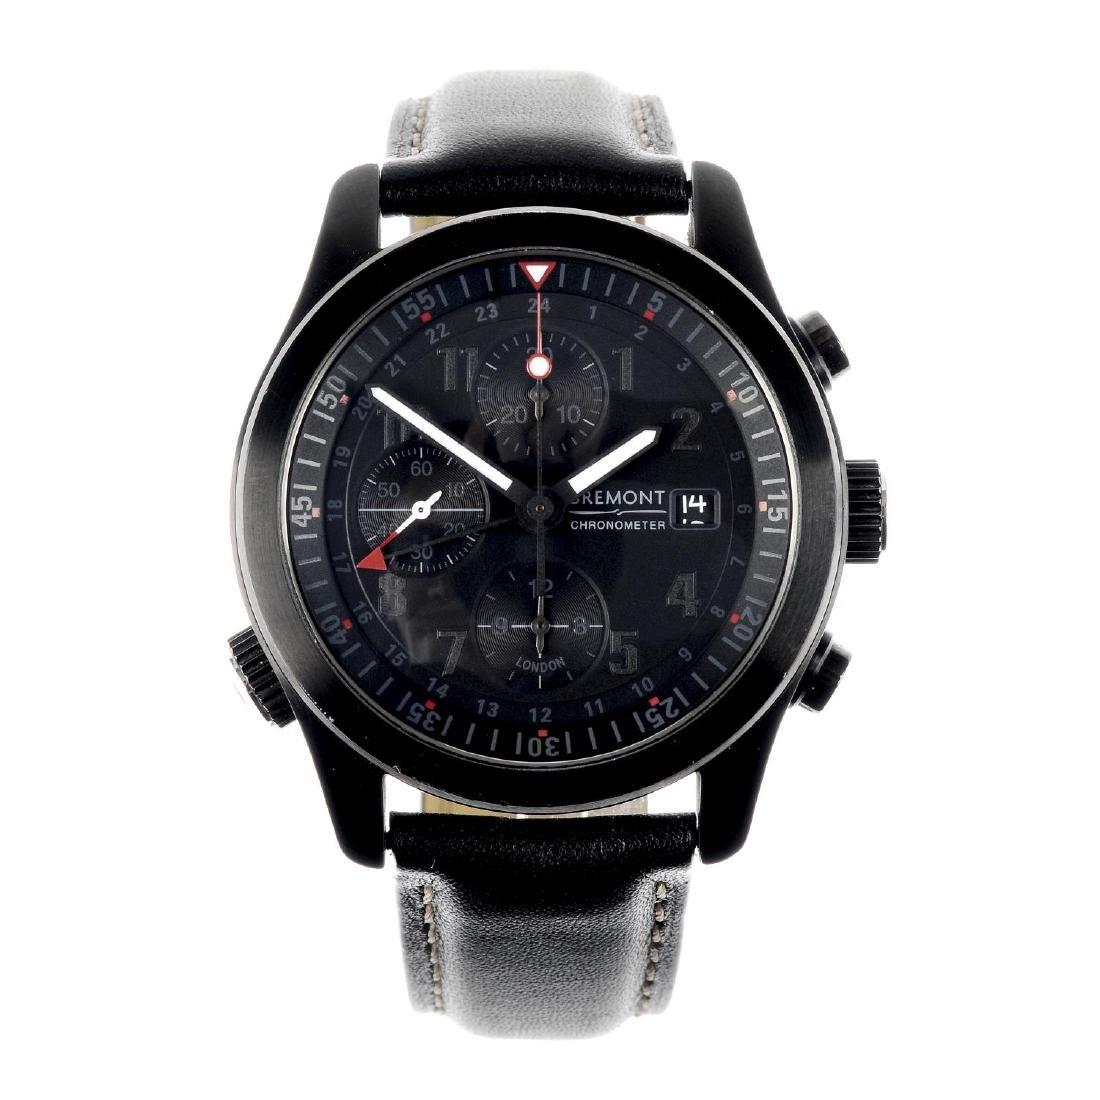 BREMONT - a gentleman's GMT chronograph wrist watch.